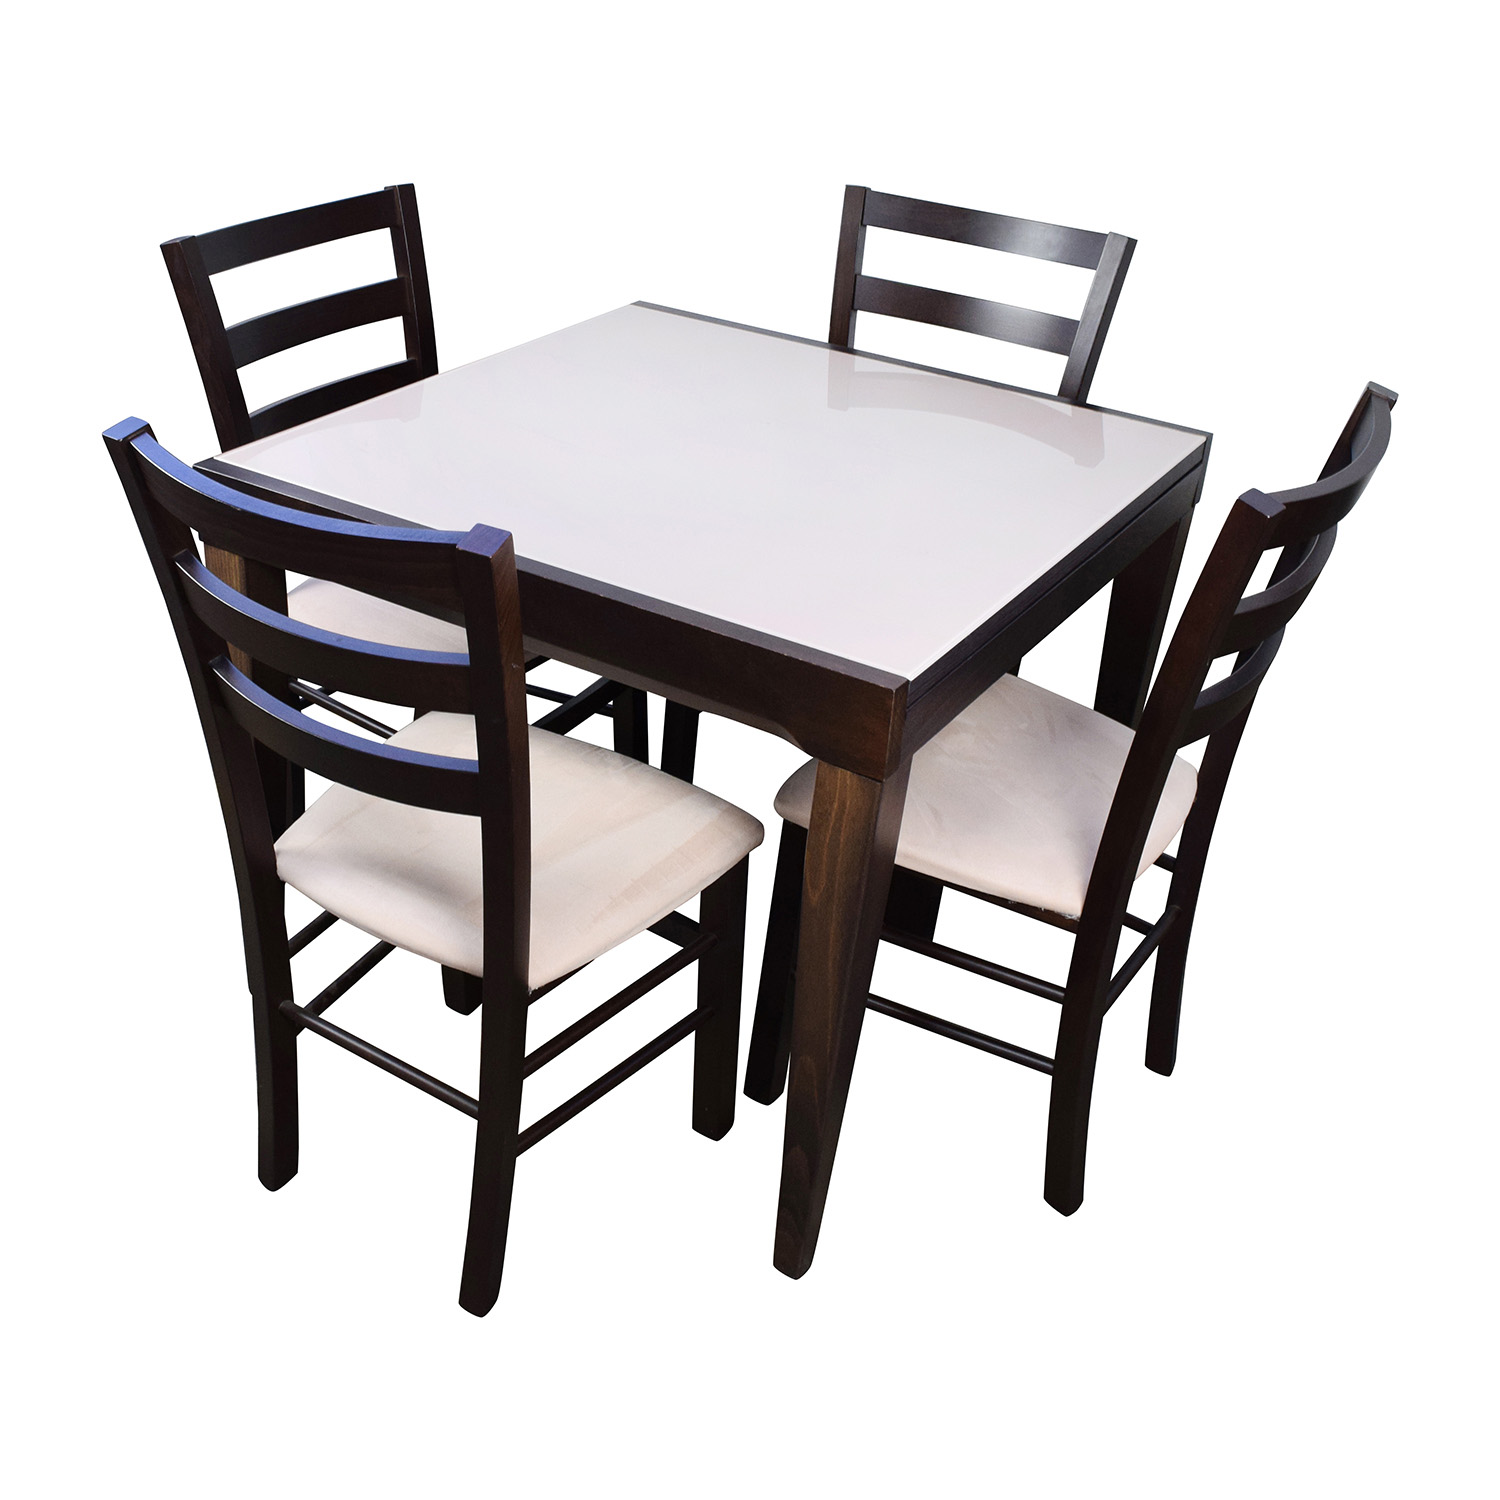 shop Macys Macys Cafe Latte Five-Piece Extendable Dining Set online